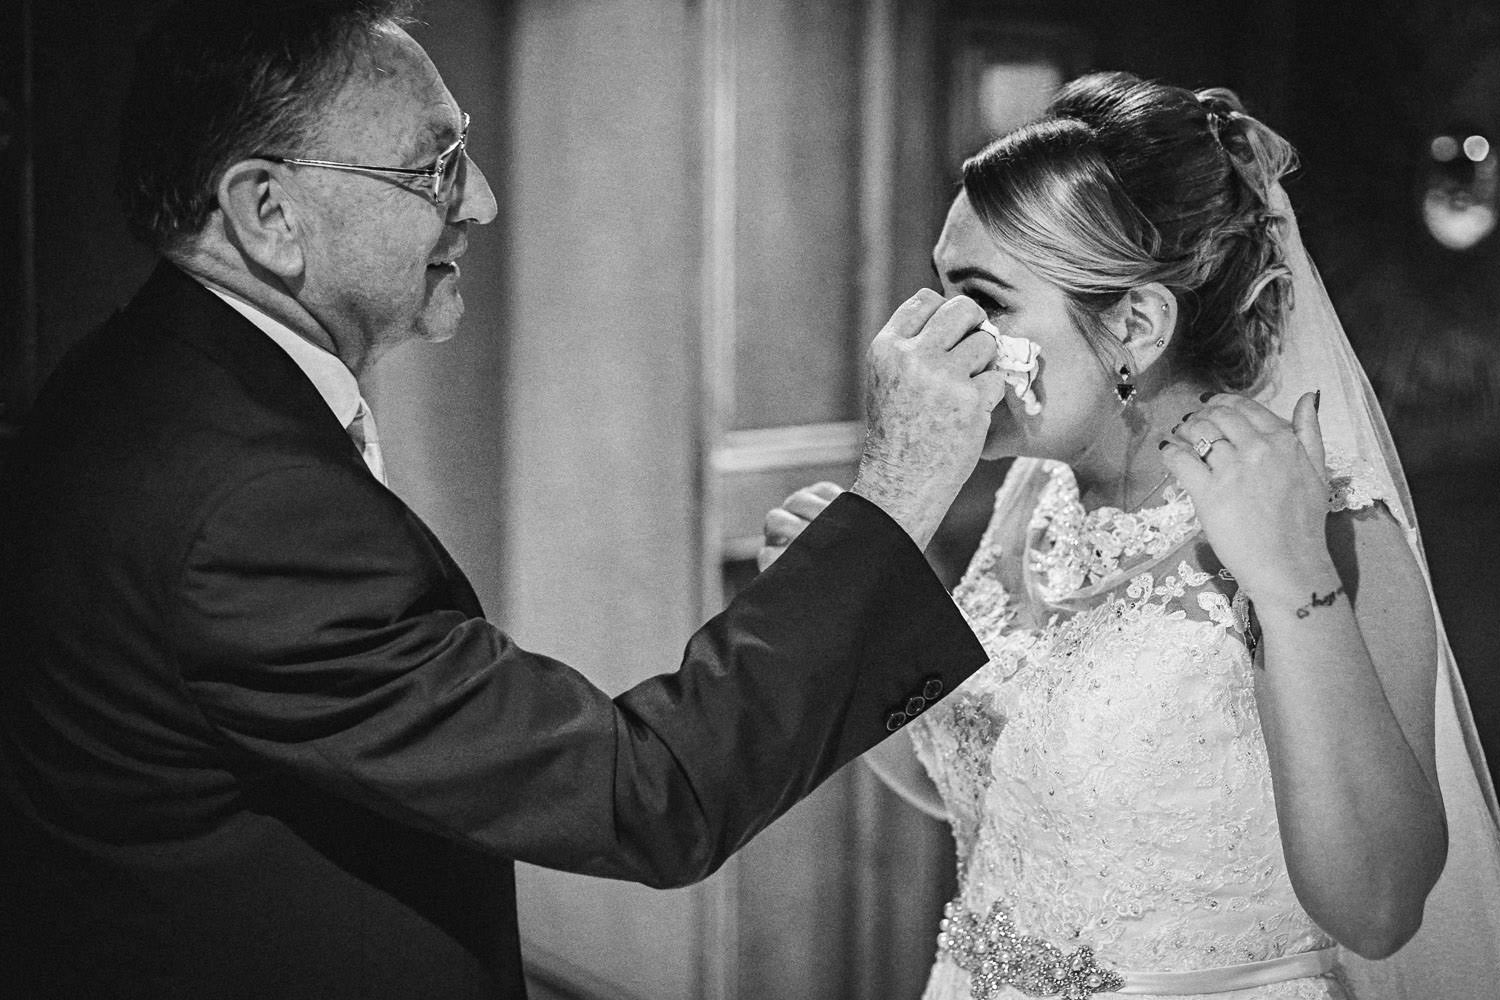 Father wiping daughters tears at wedding